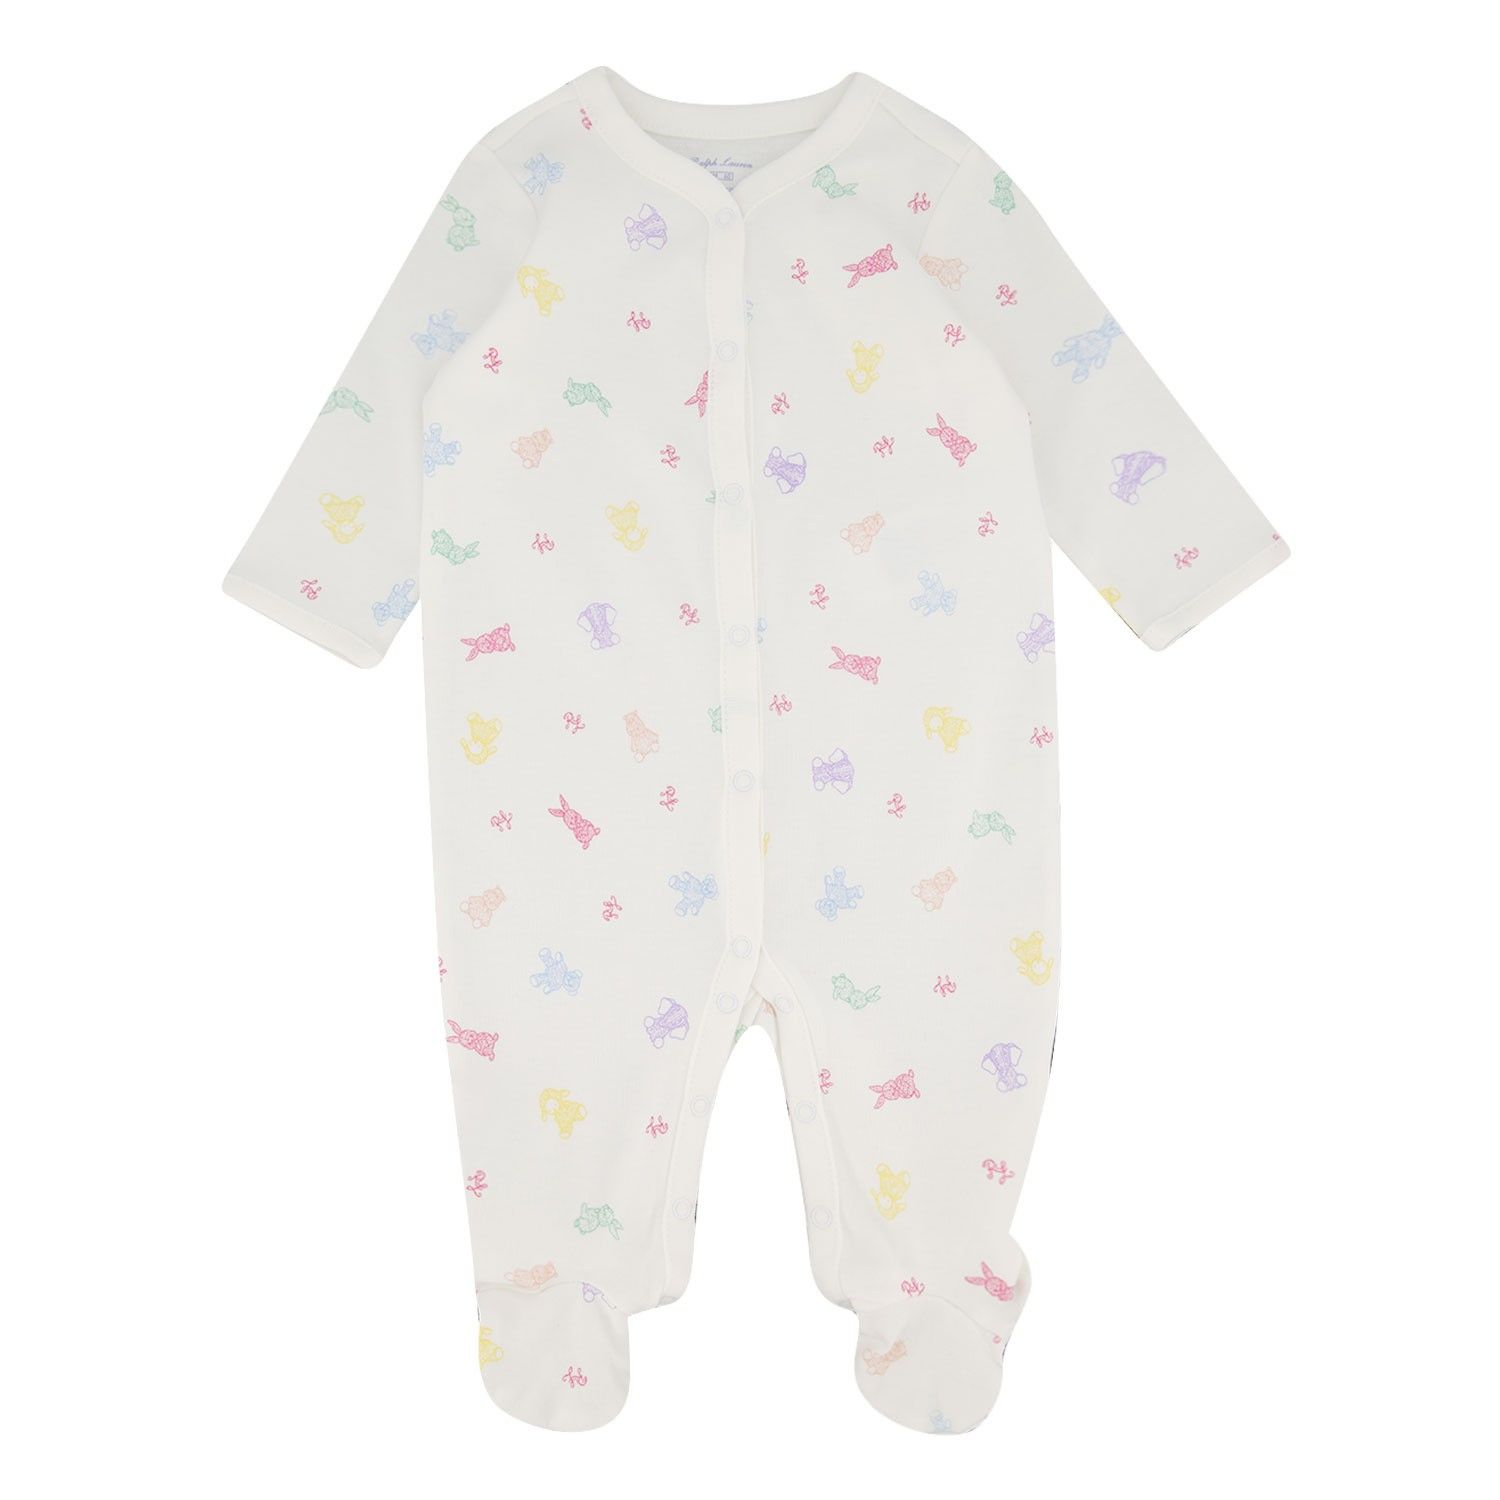 Picture of Ralph Lauren 310785115 baby playsuit white